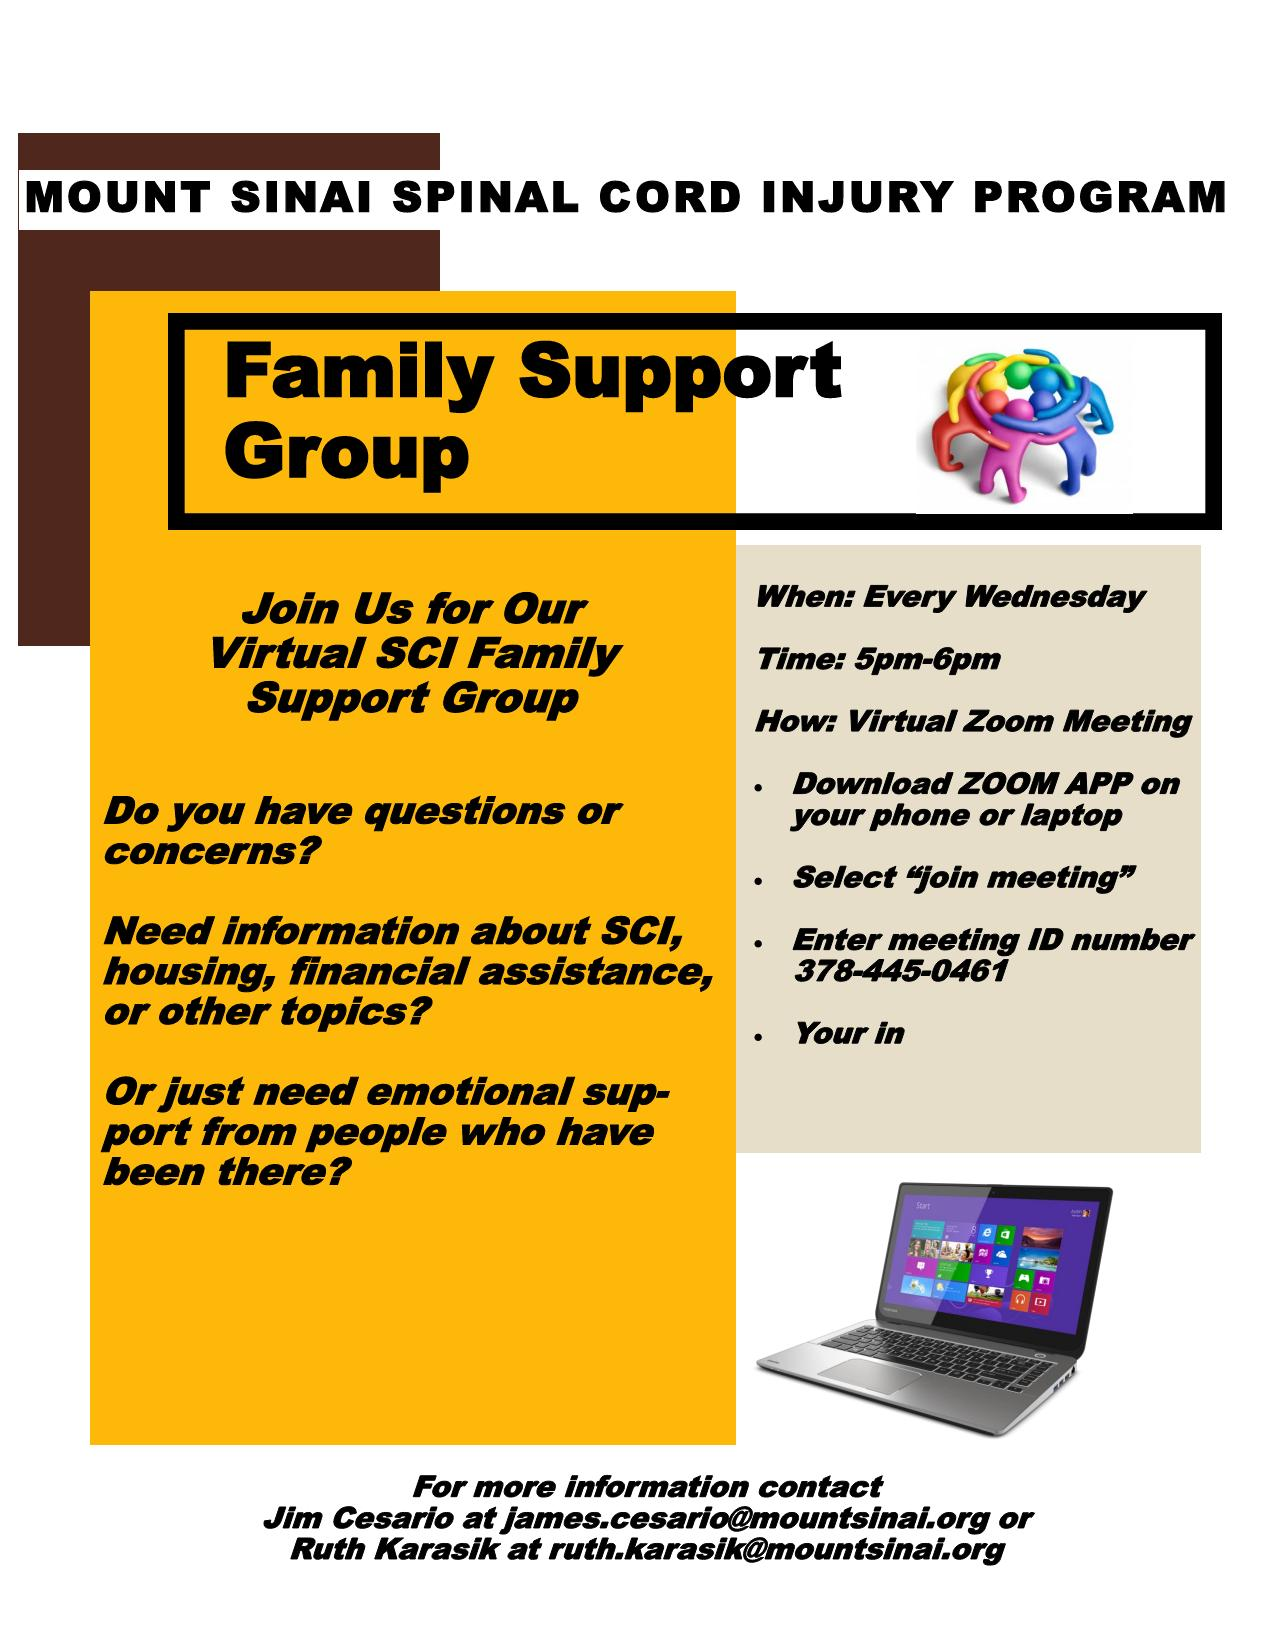 Family Support Group @ ZOOM ID# 378 445 0461